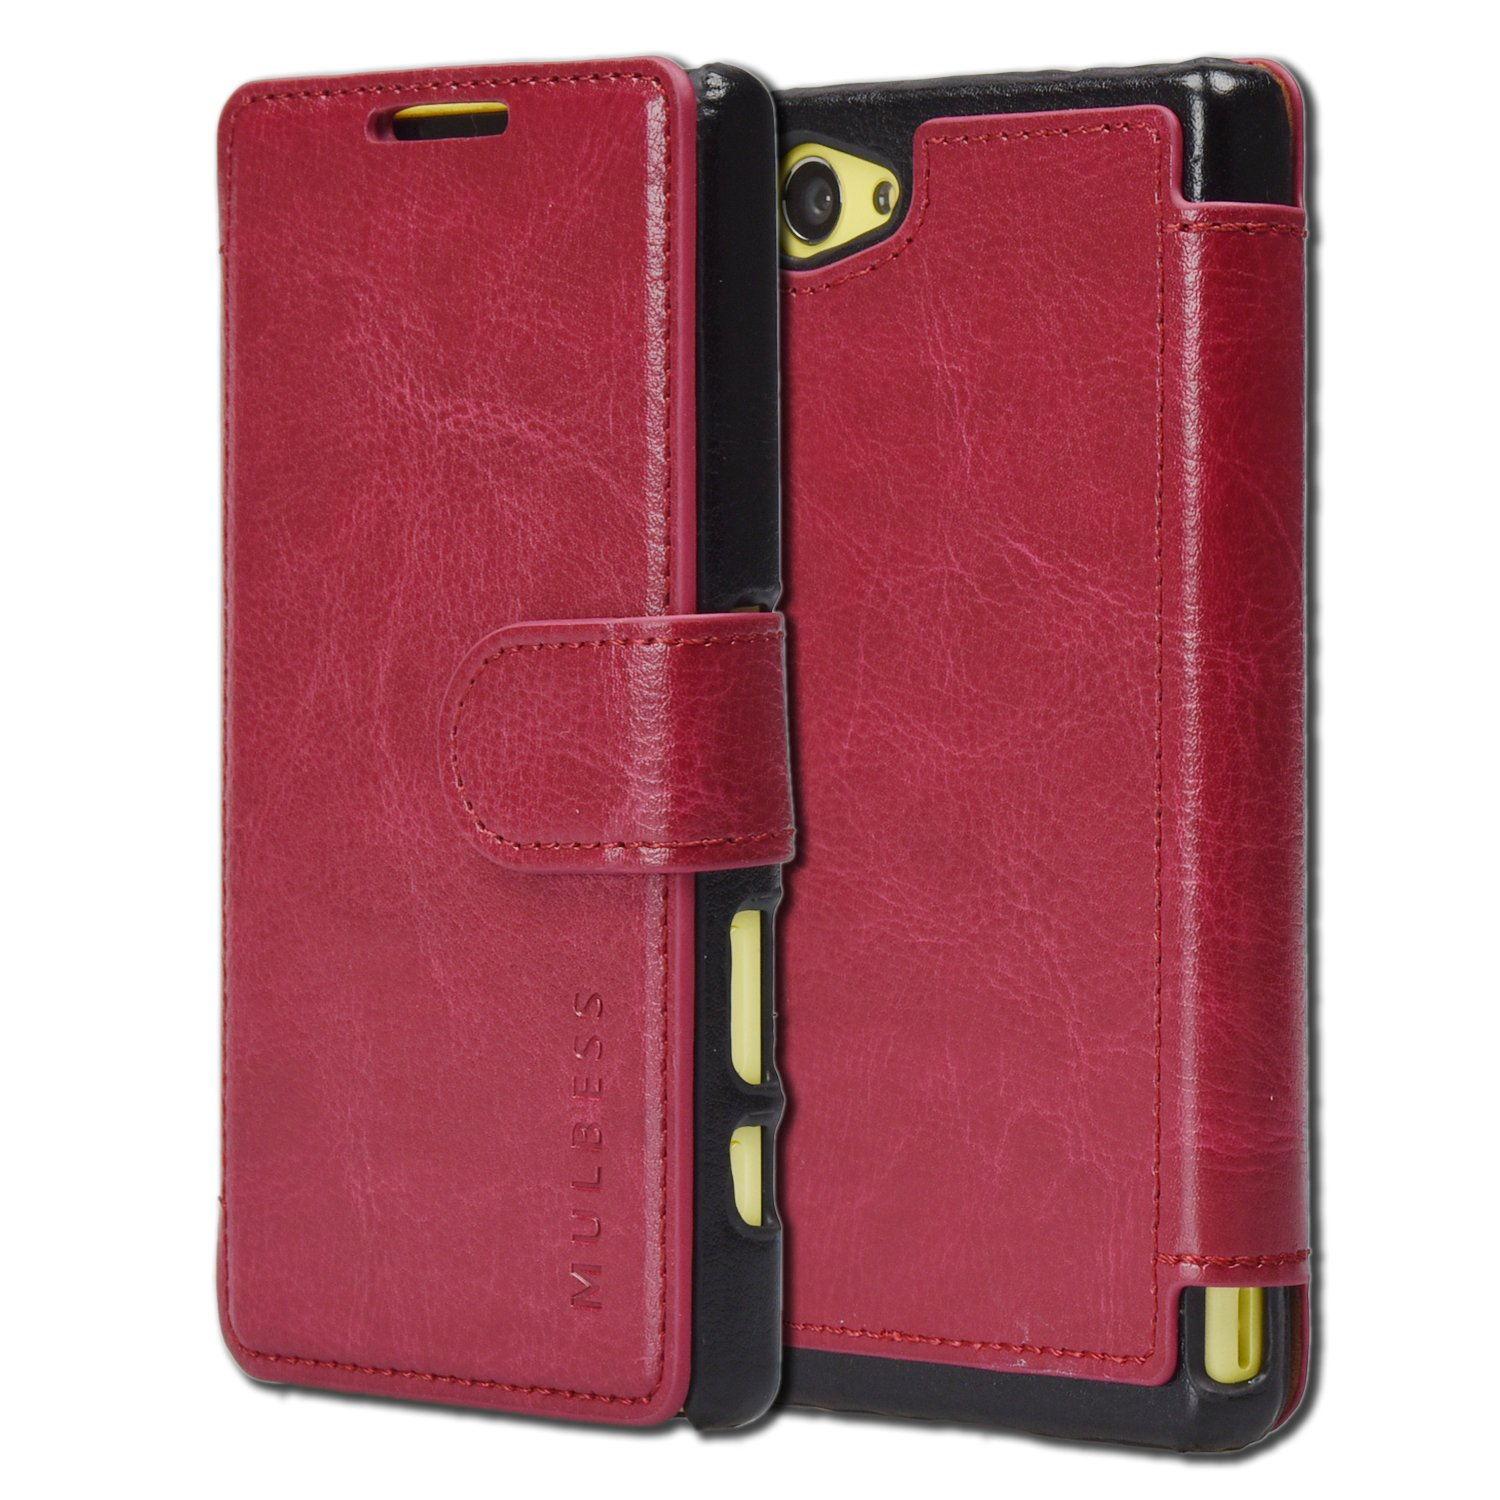 check out 72fff 0204c Sony Xperia Z5 Compact Case Wallet - Mulbess [Layered Dandy][Wine Red] -  [Slim][Wallet Case] - Premium Leather Flip Case With Credit Card Slot for  ...